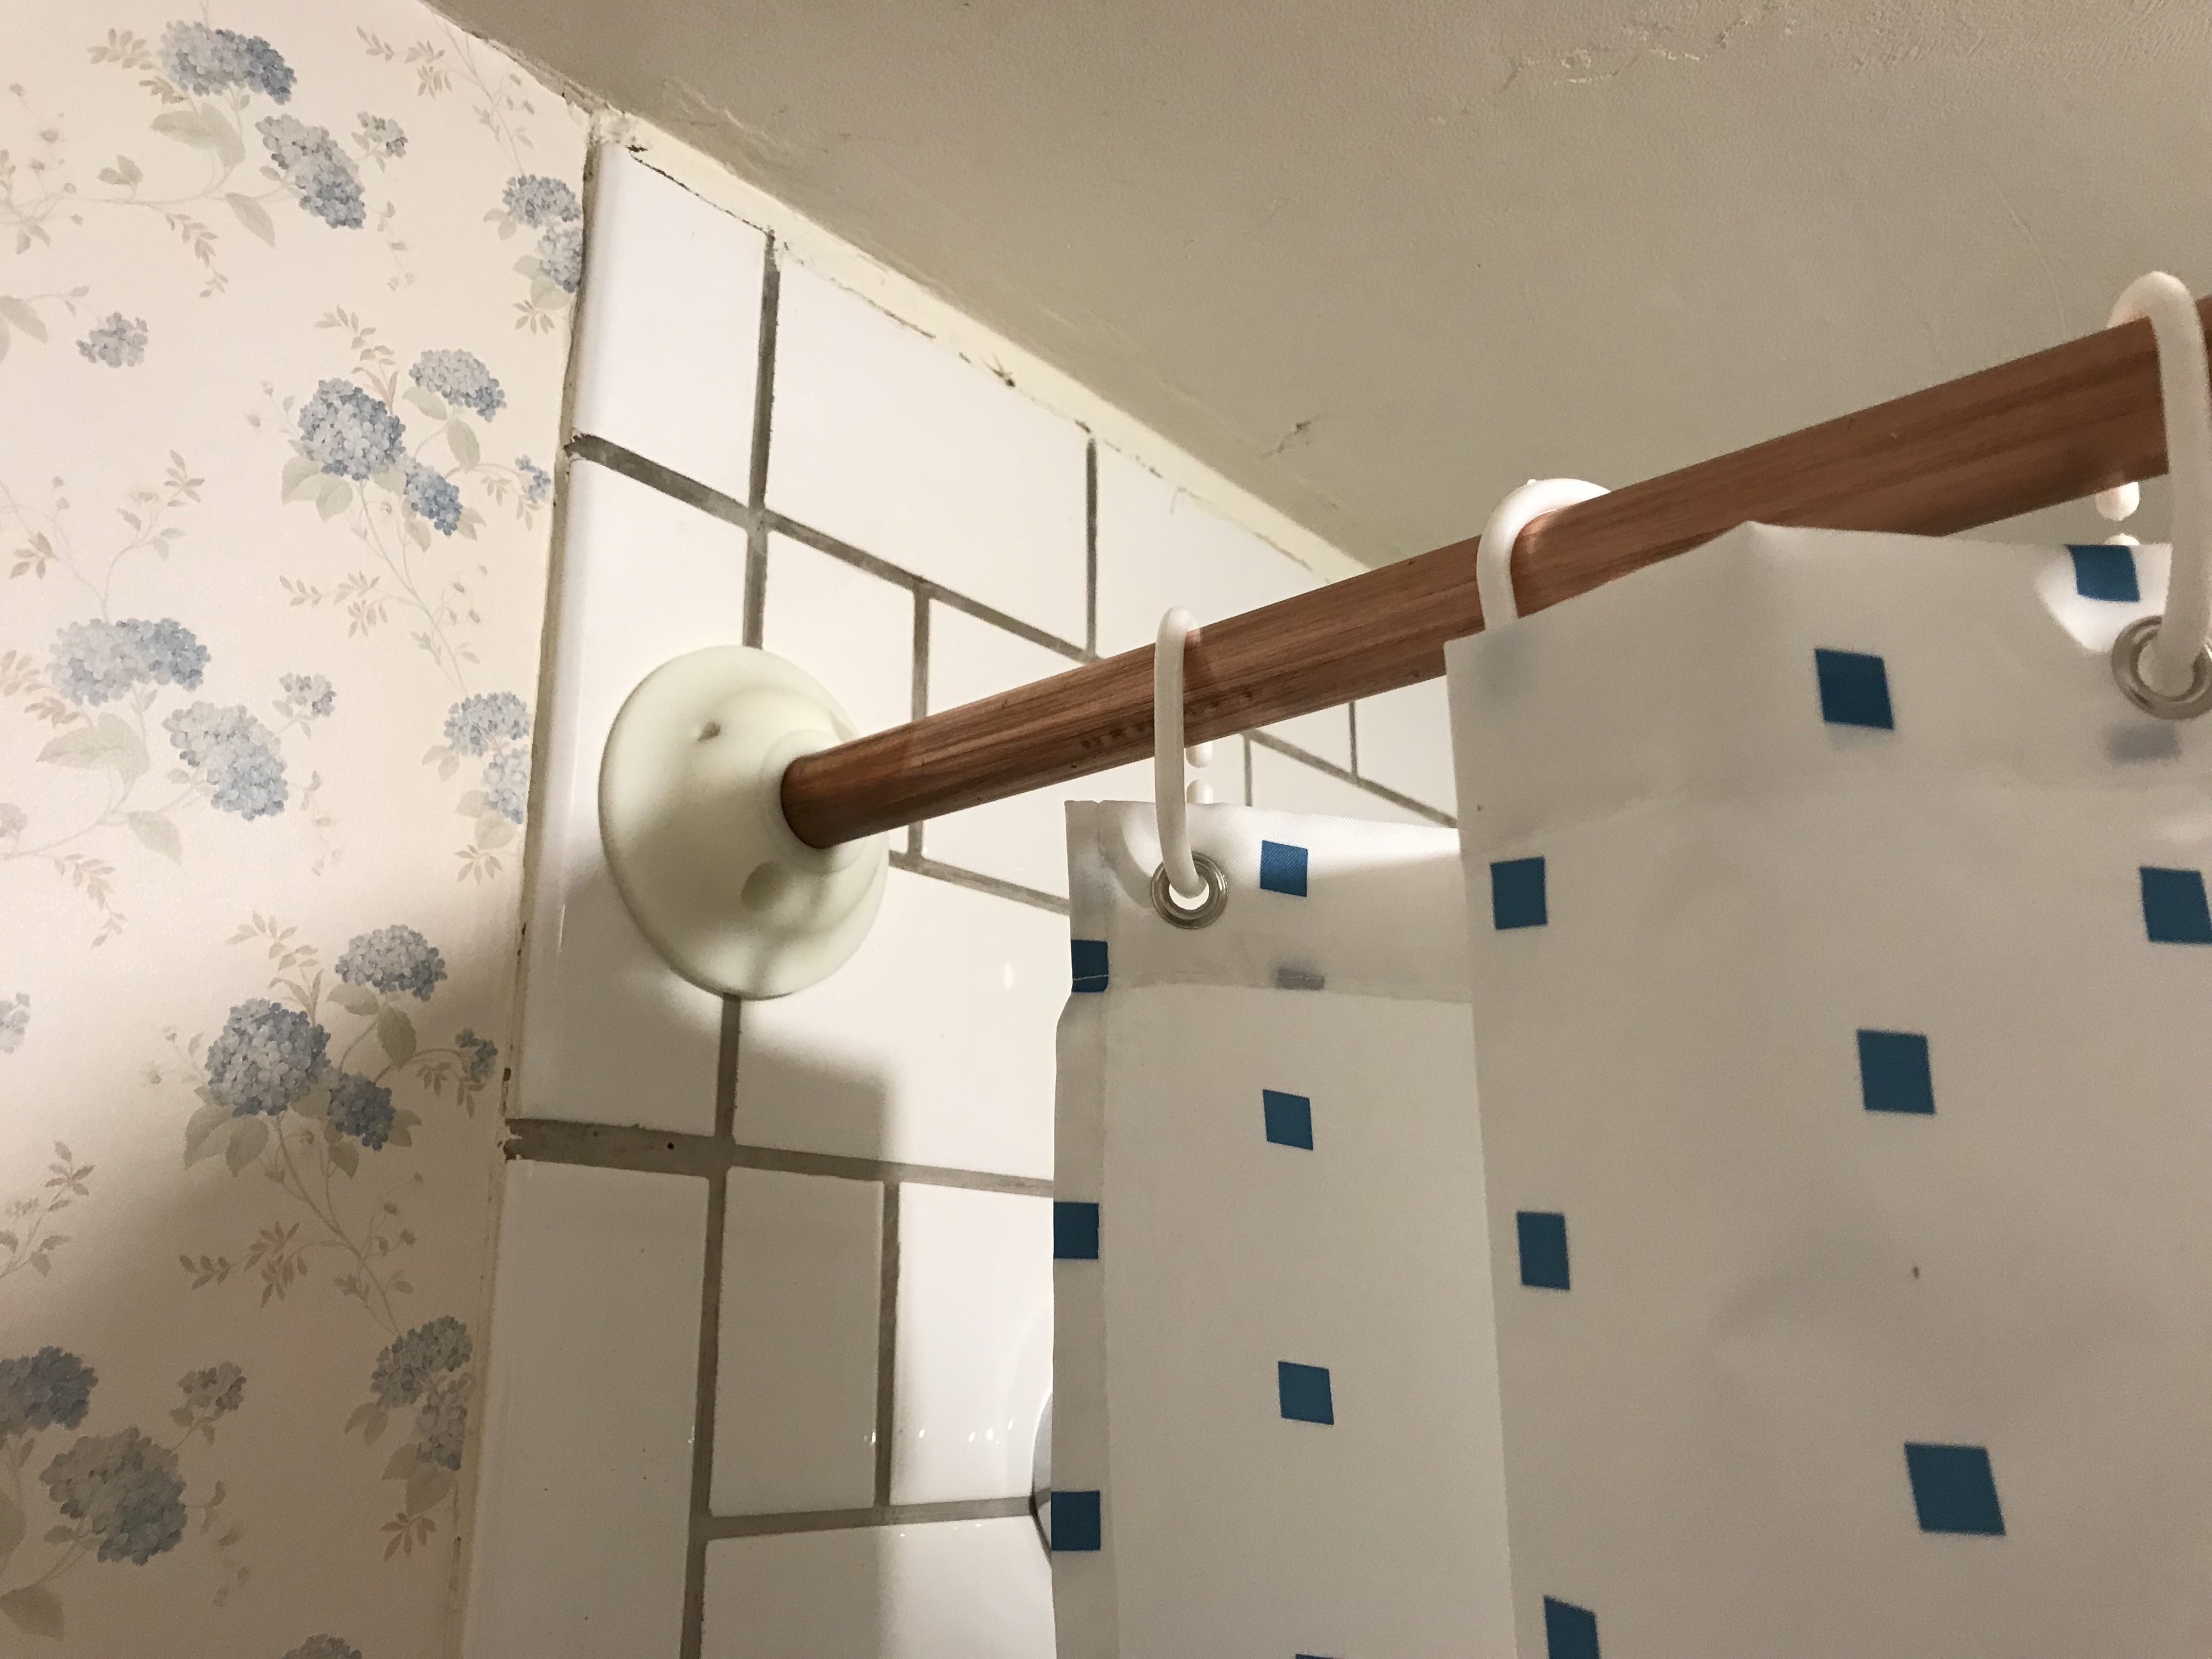 3d Printed Shower Curtain Rod Mounting Brackets By Natanj